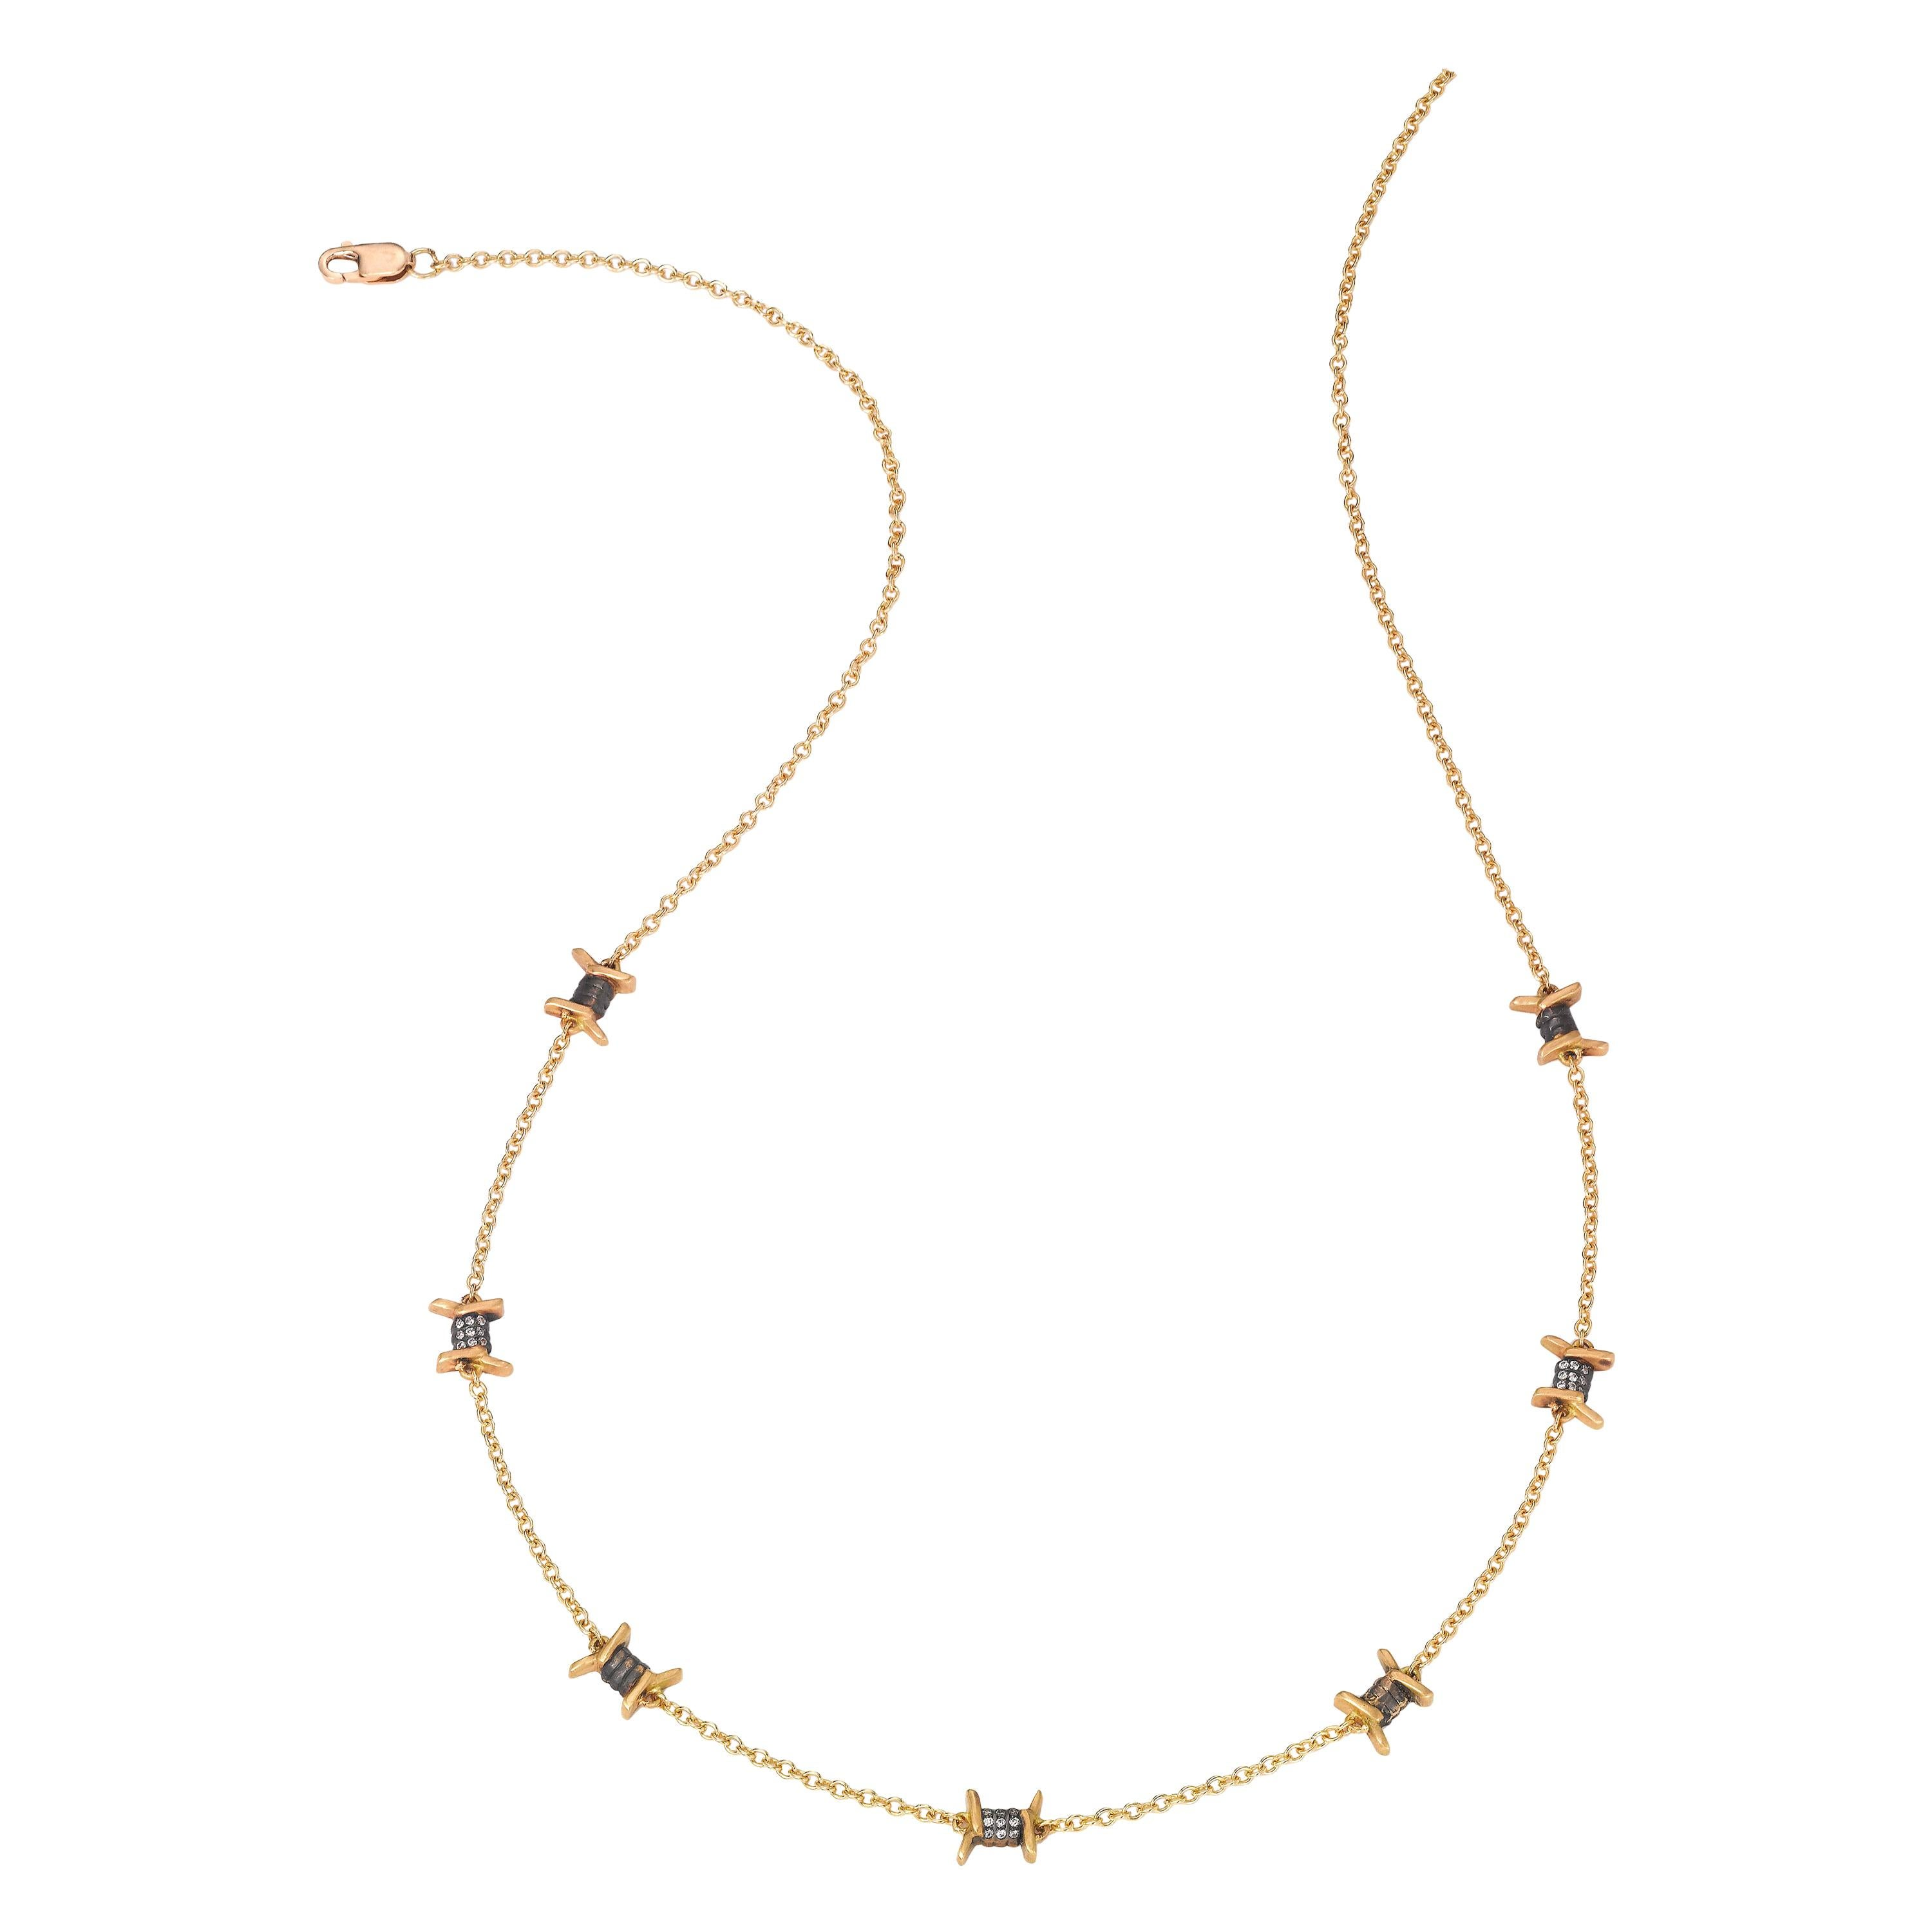 Wendy Brandes Barbed Wire Diamond and Yellow Gold Punk Necklace